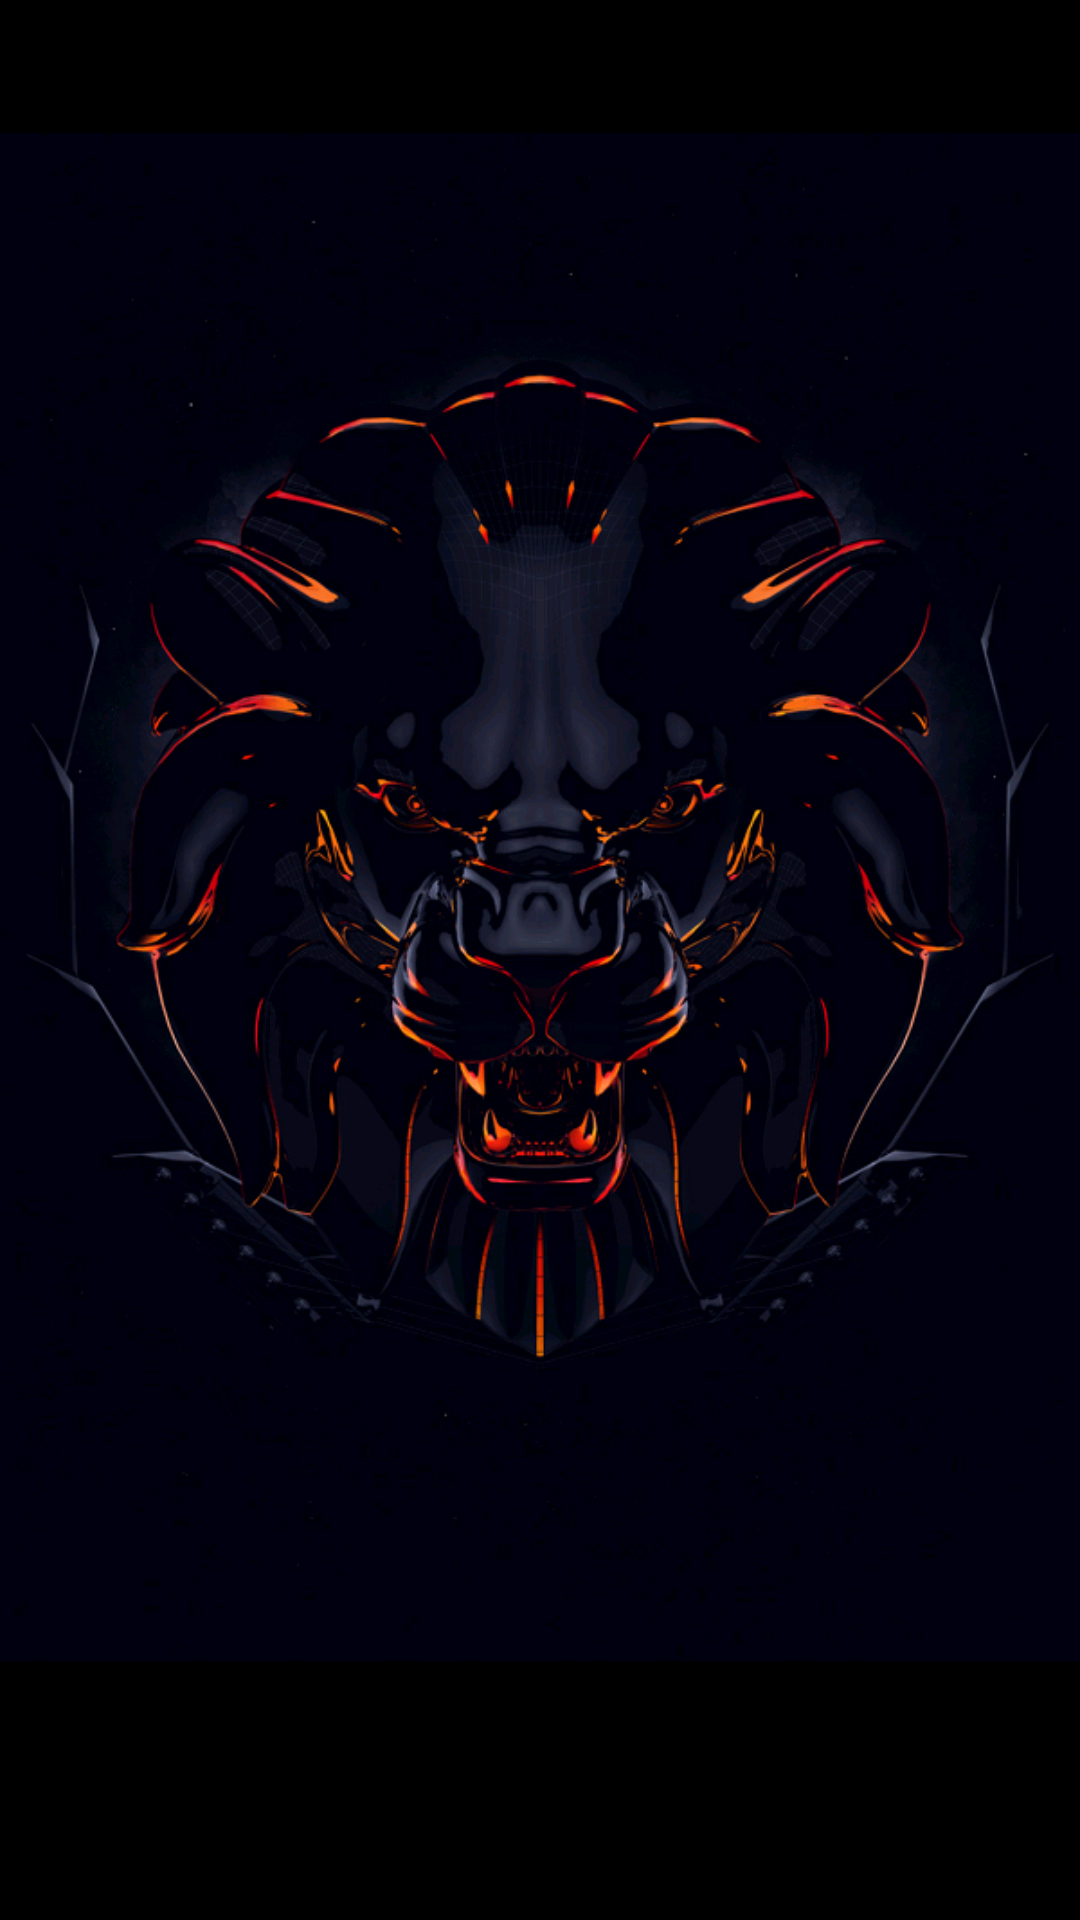 Badass wallpapers for android 17 0f 40 animated lion - Badass screensavers ...